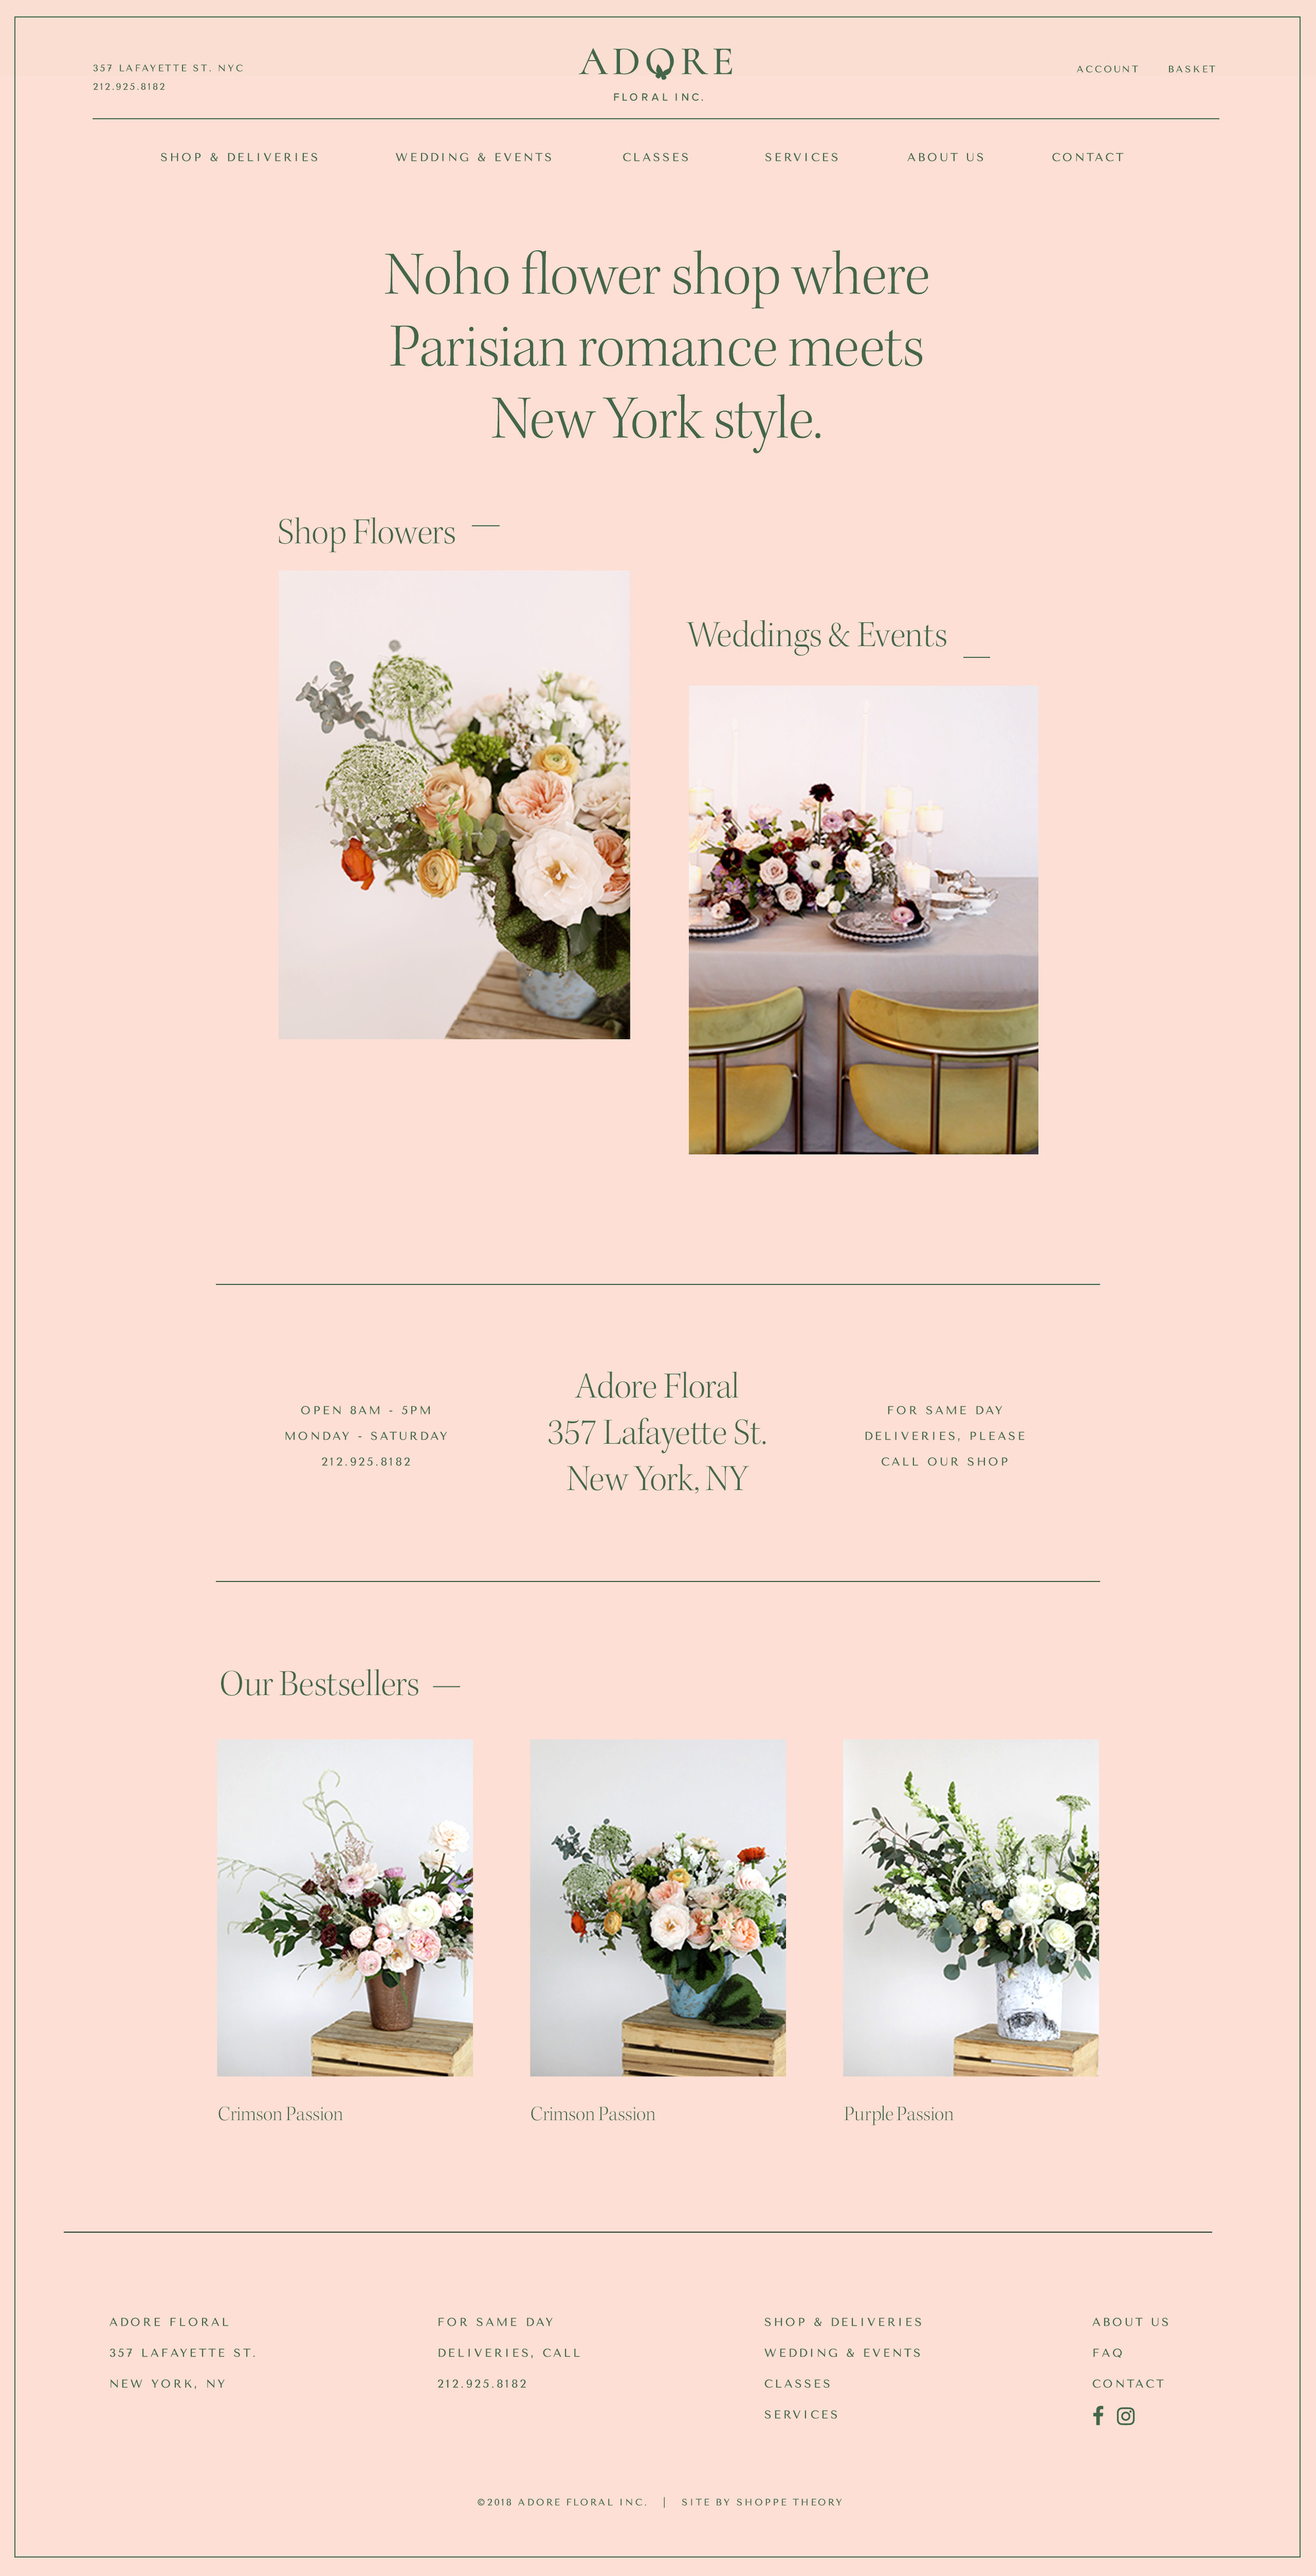 Adore Floral early website concept by Shoppe Theory.